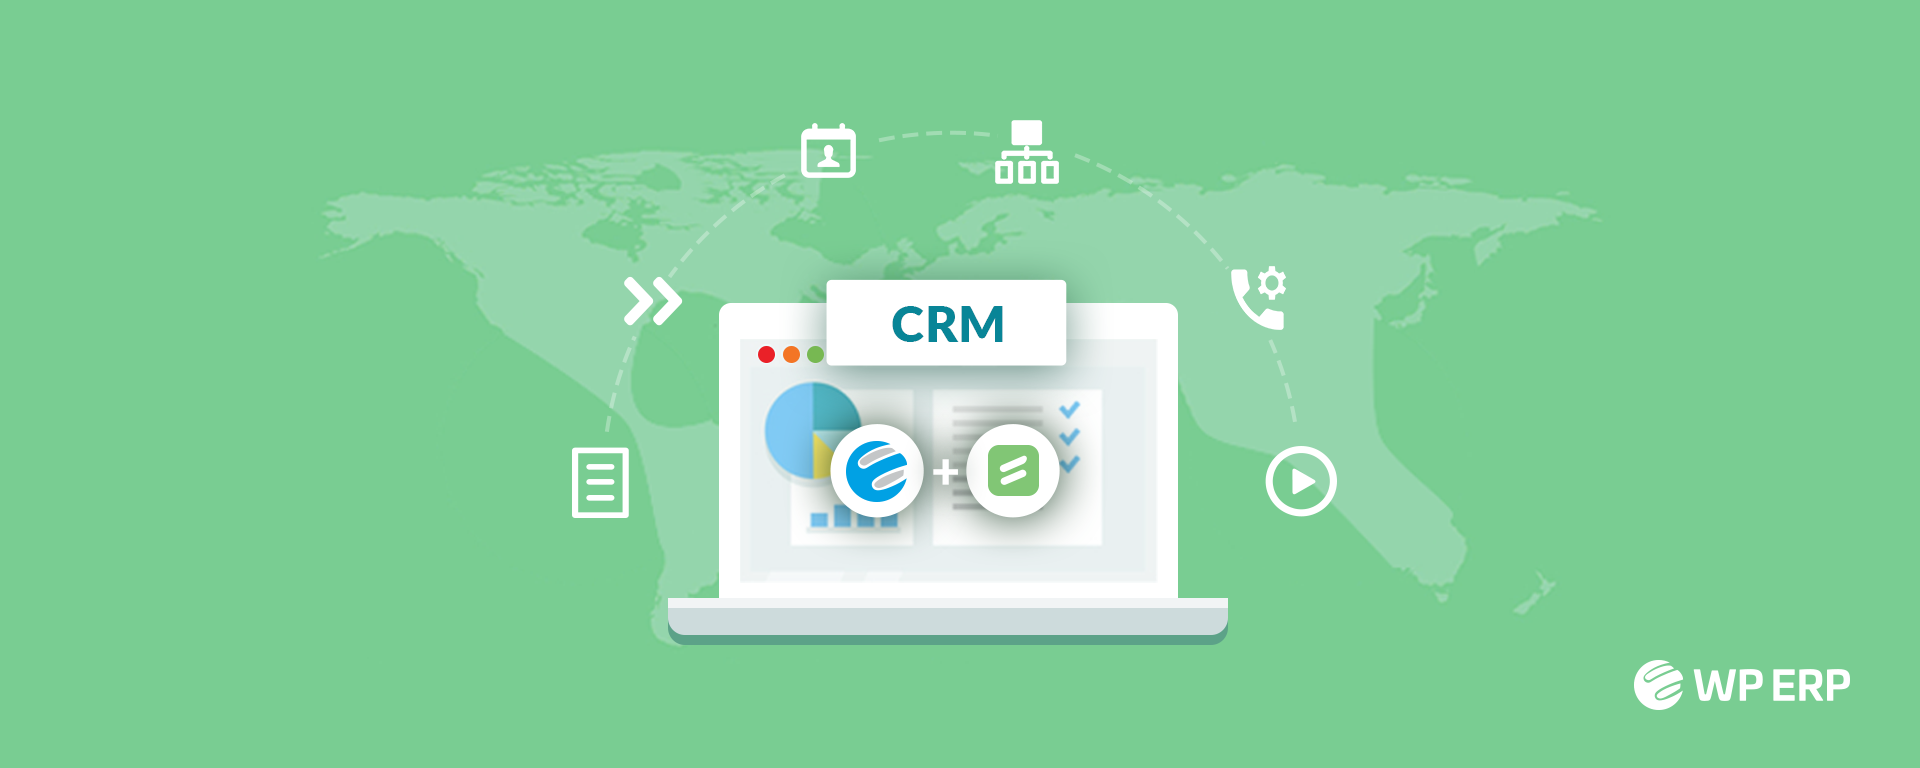 Use weForms to add subscribers on CRM